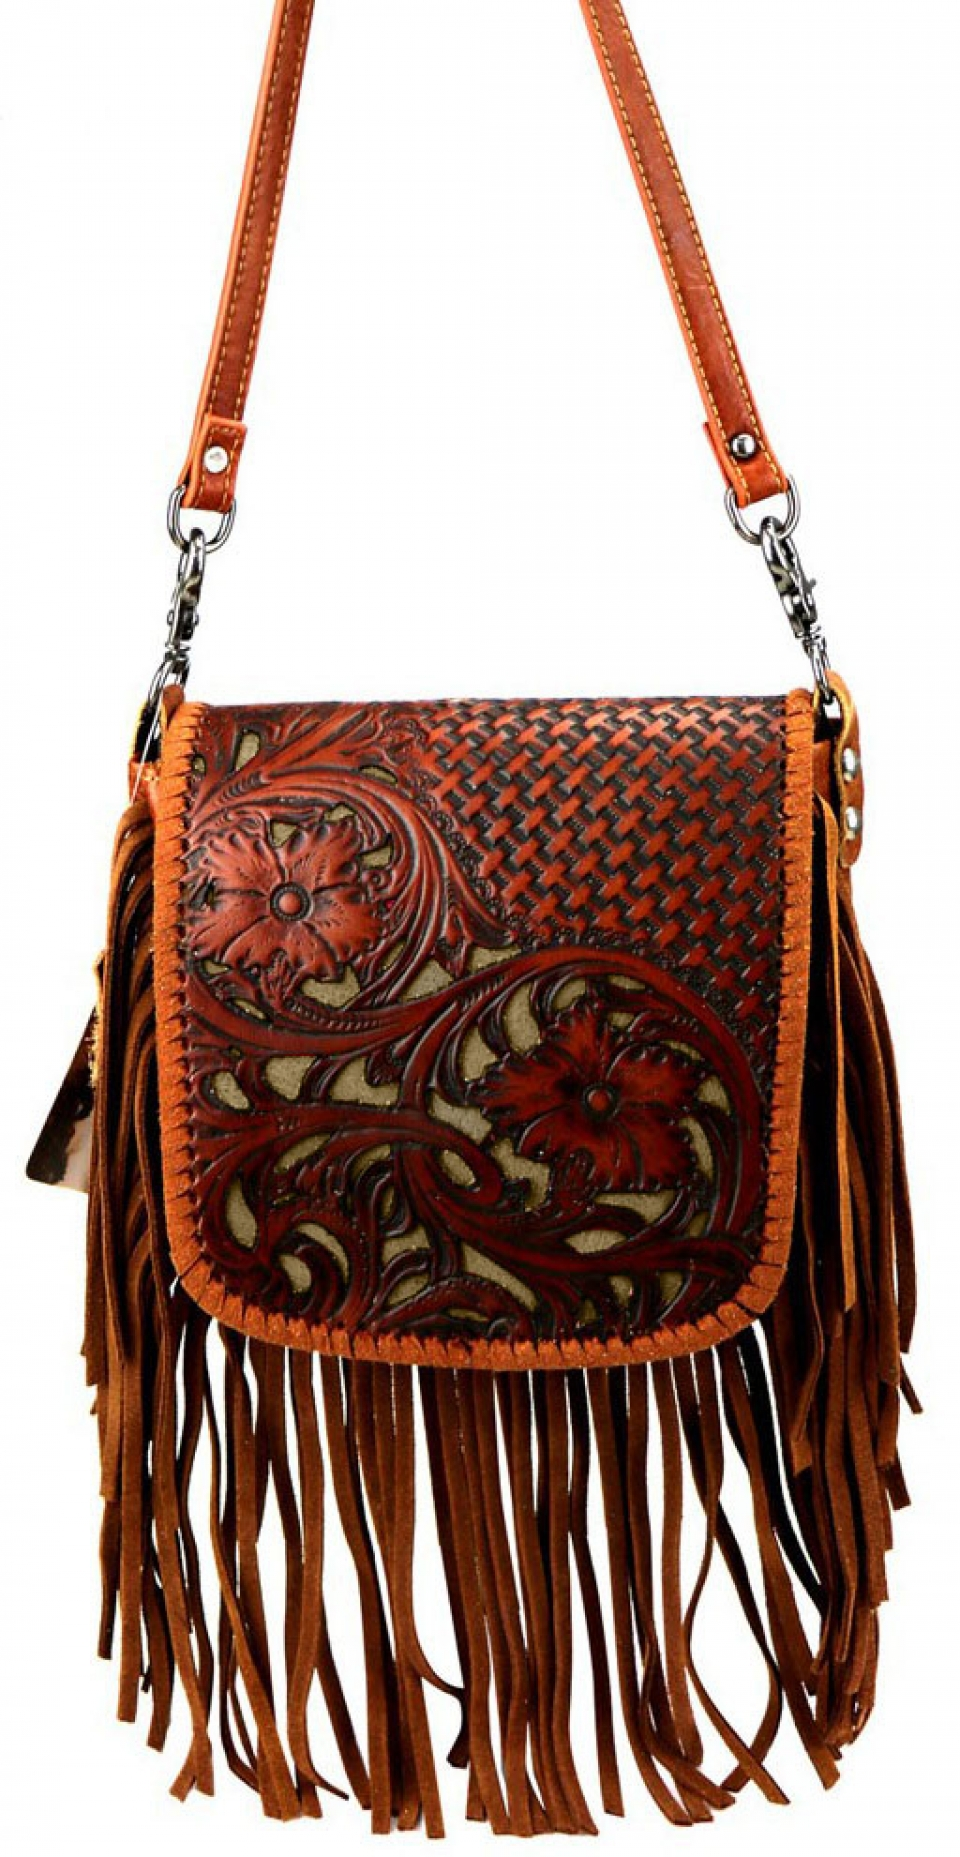 Inlay Tooled Leather Purse Cattle Kate